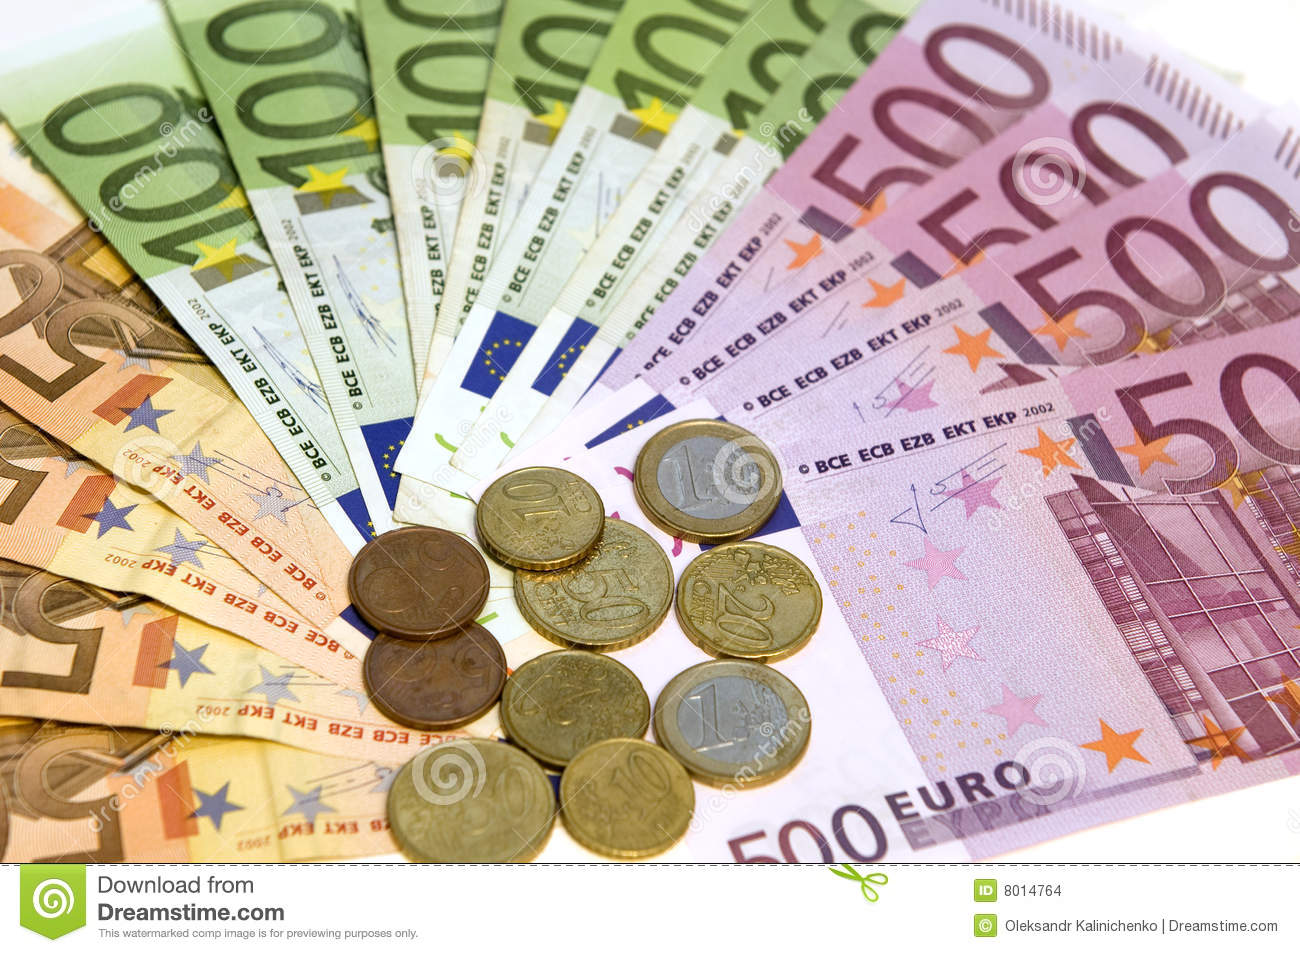 Euro banknotes nd coins, different values, cash.